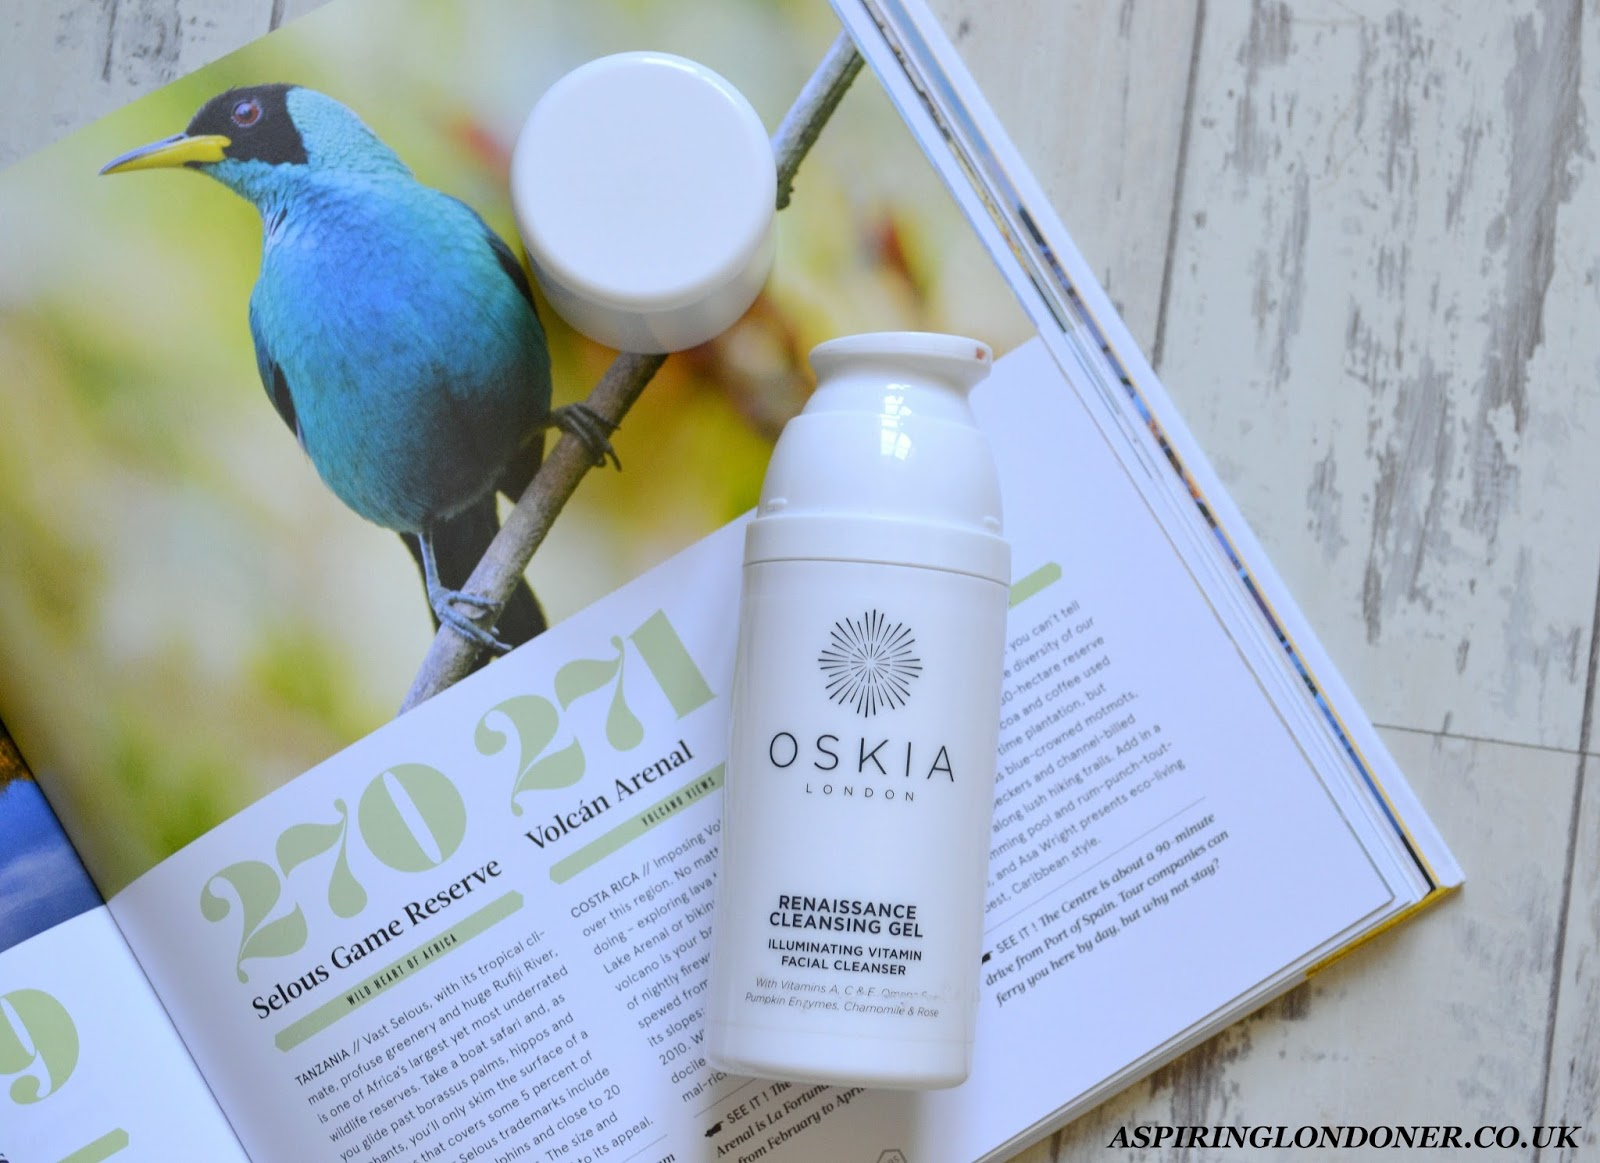 OSKIA Renaissance Cleansing Gel Review - Aspiring Londoner